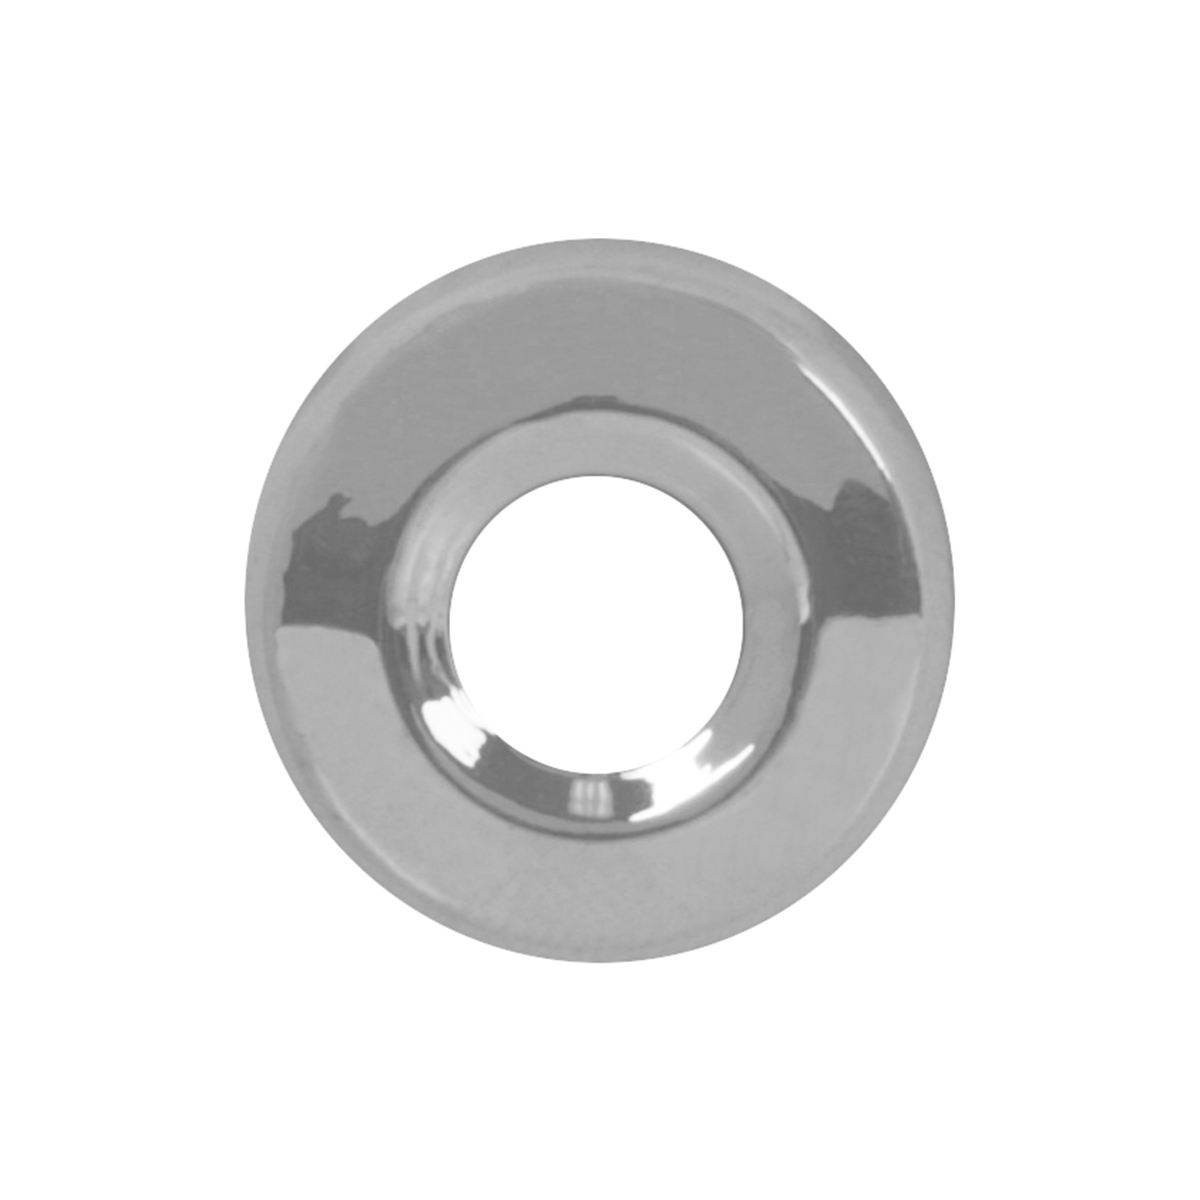 67262 FLT Chrome Plastic Toggle Switch Face Nut Cover